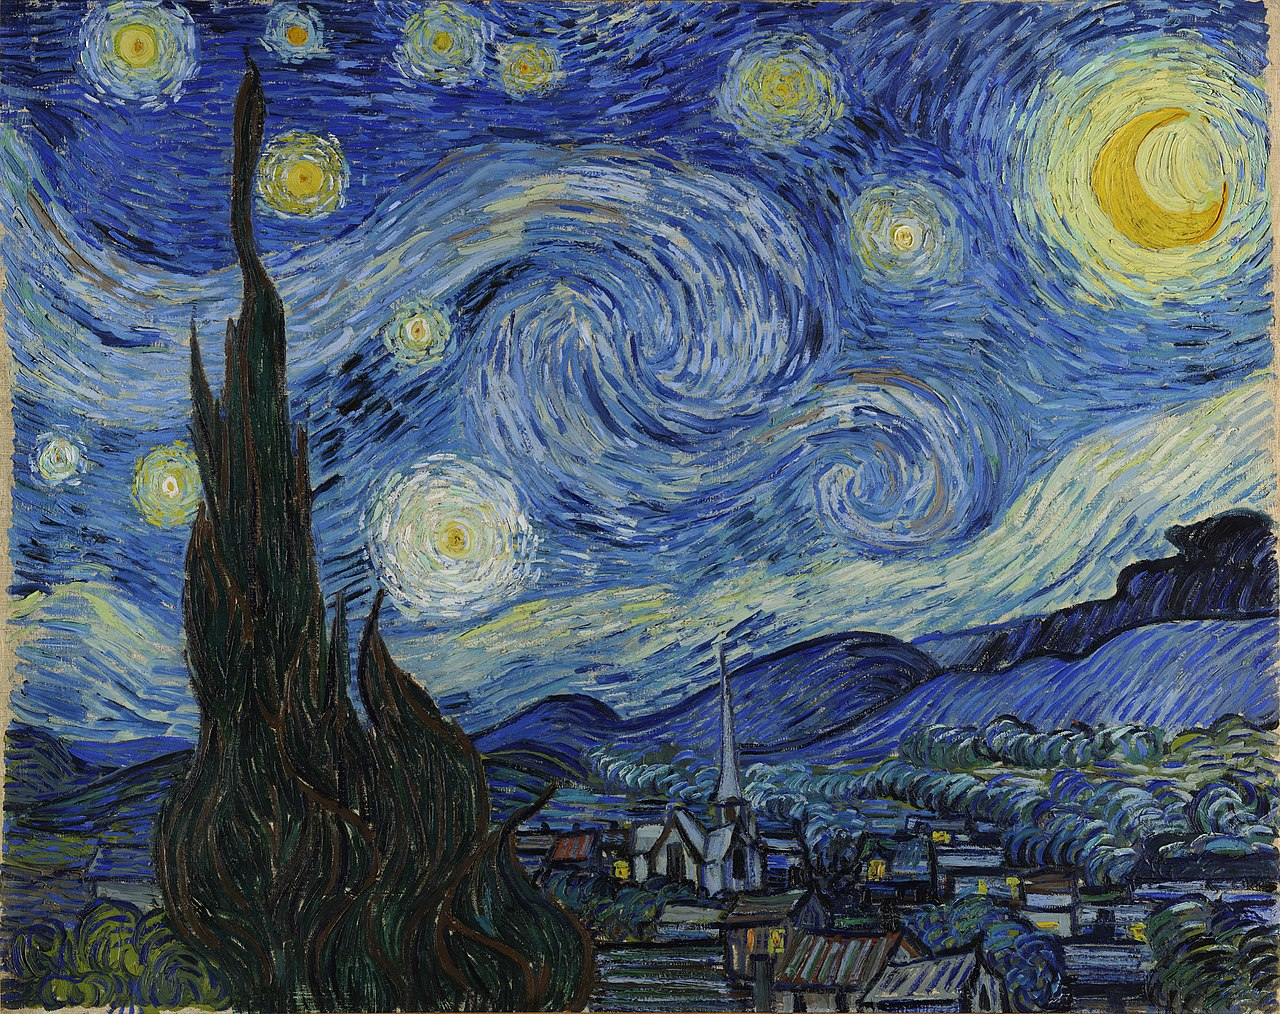 Vincent Van Gogh's dreamy Starry Night at nearby Arles. - The Starry Night, Arles 1889 | MOMA